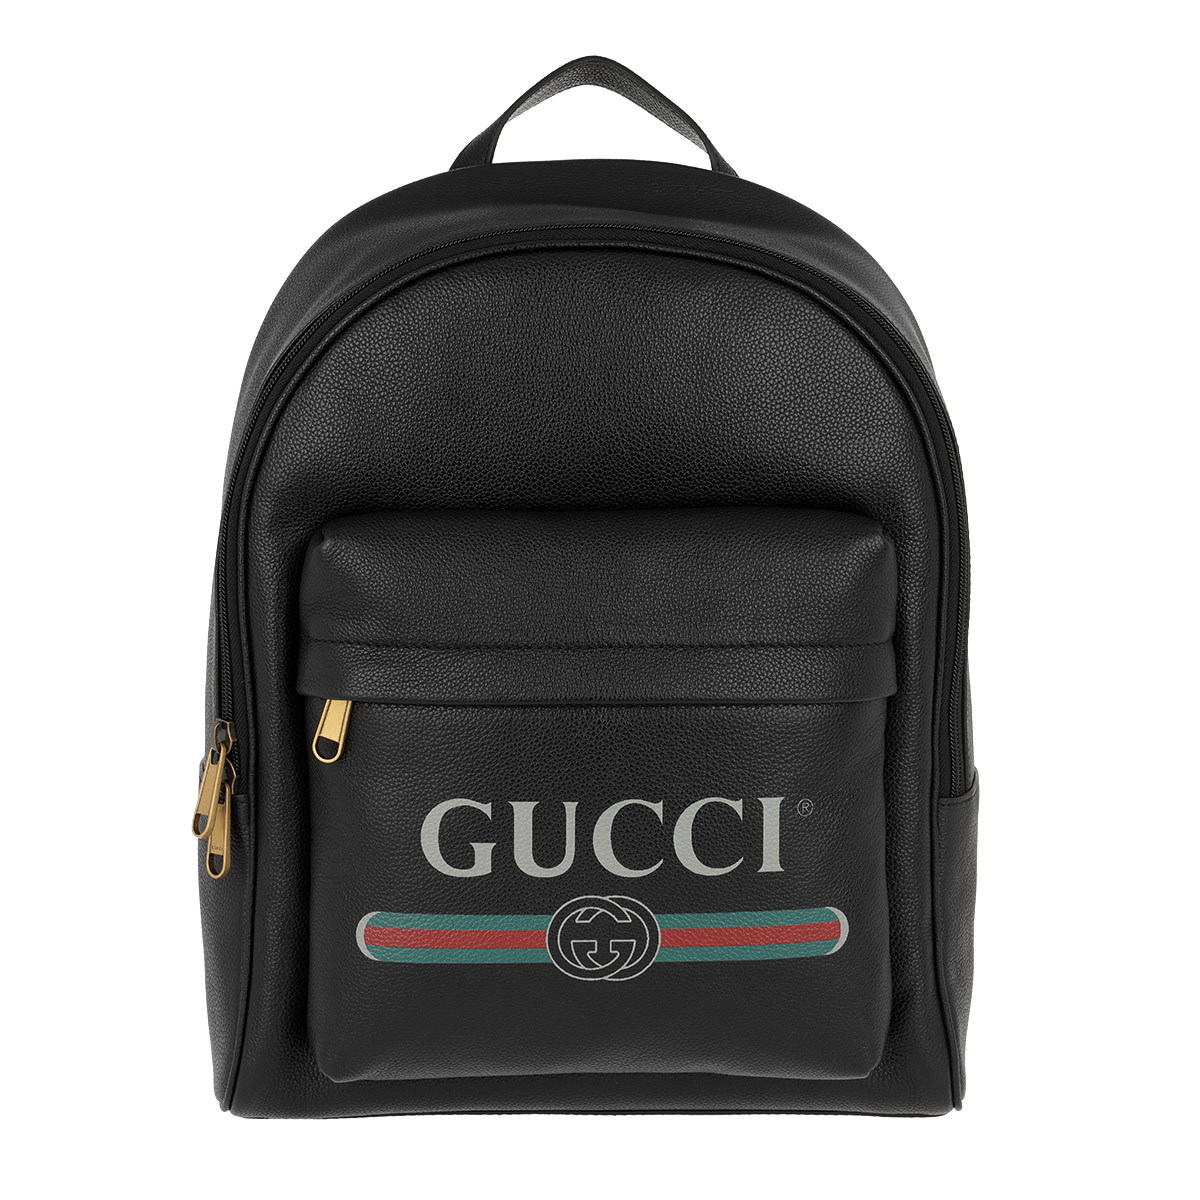 Gucci Rucksack - Gucci Print Backpack Leather Black - in schwarz - für Damen